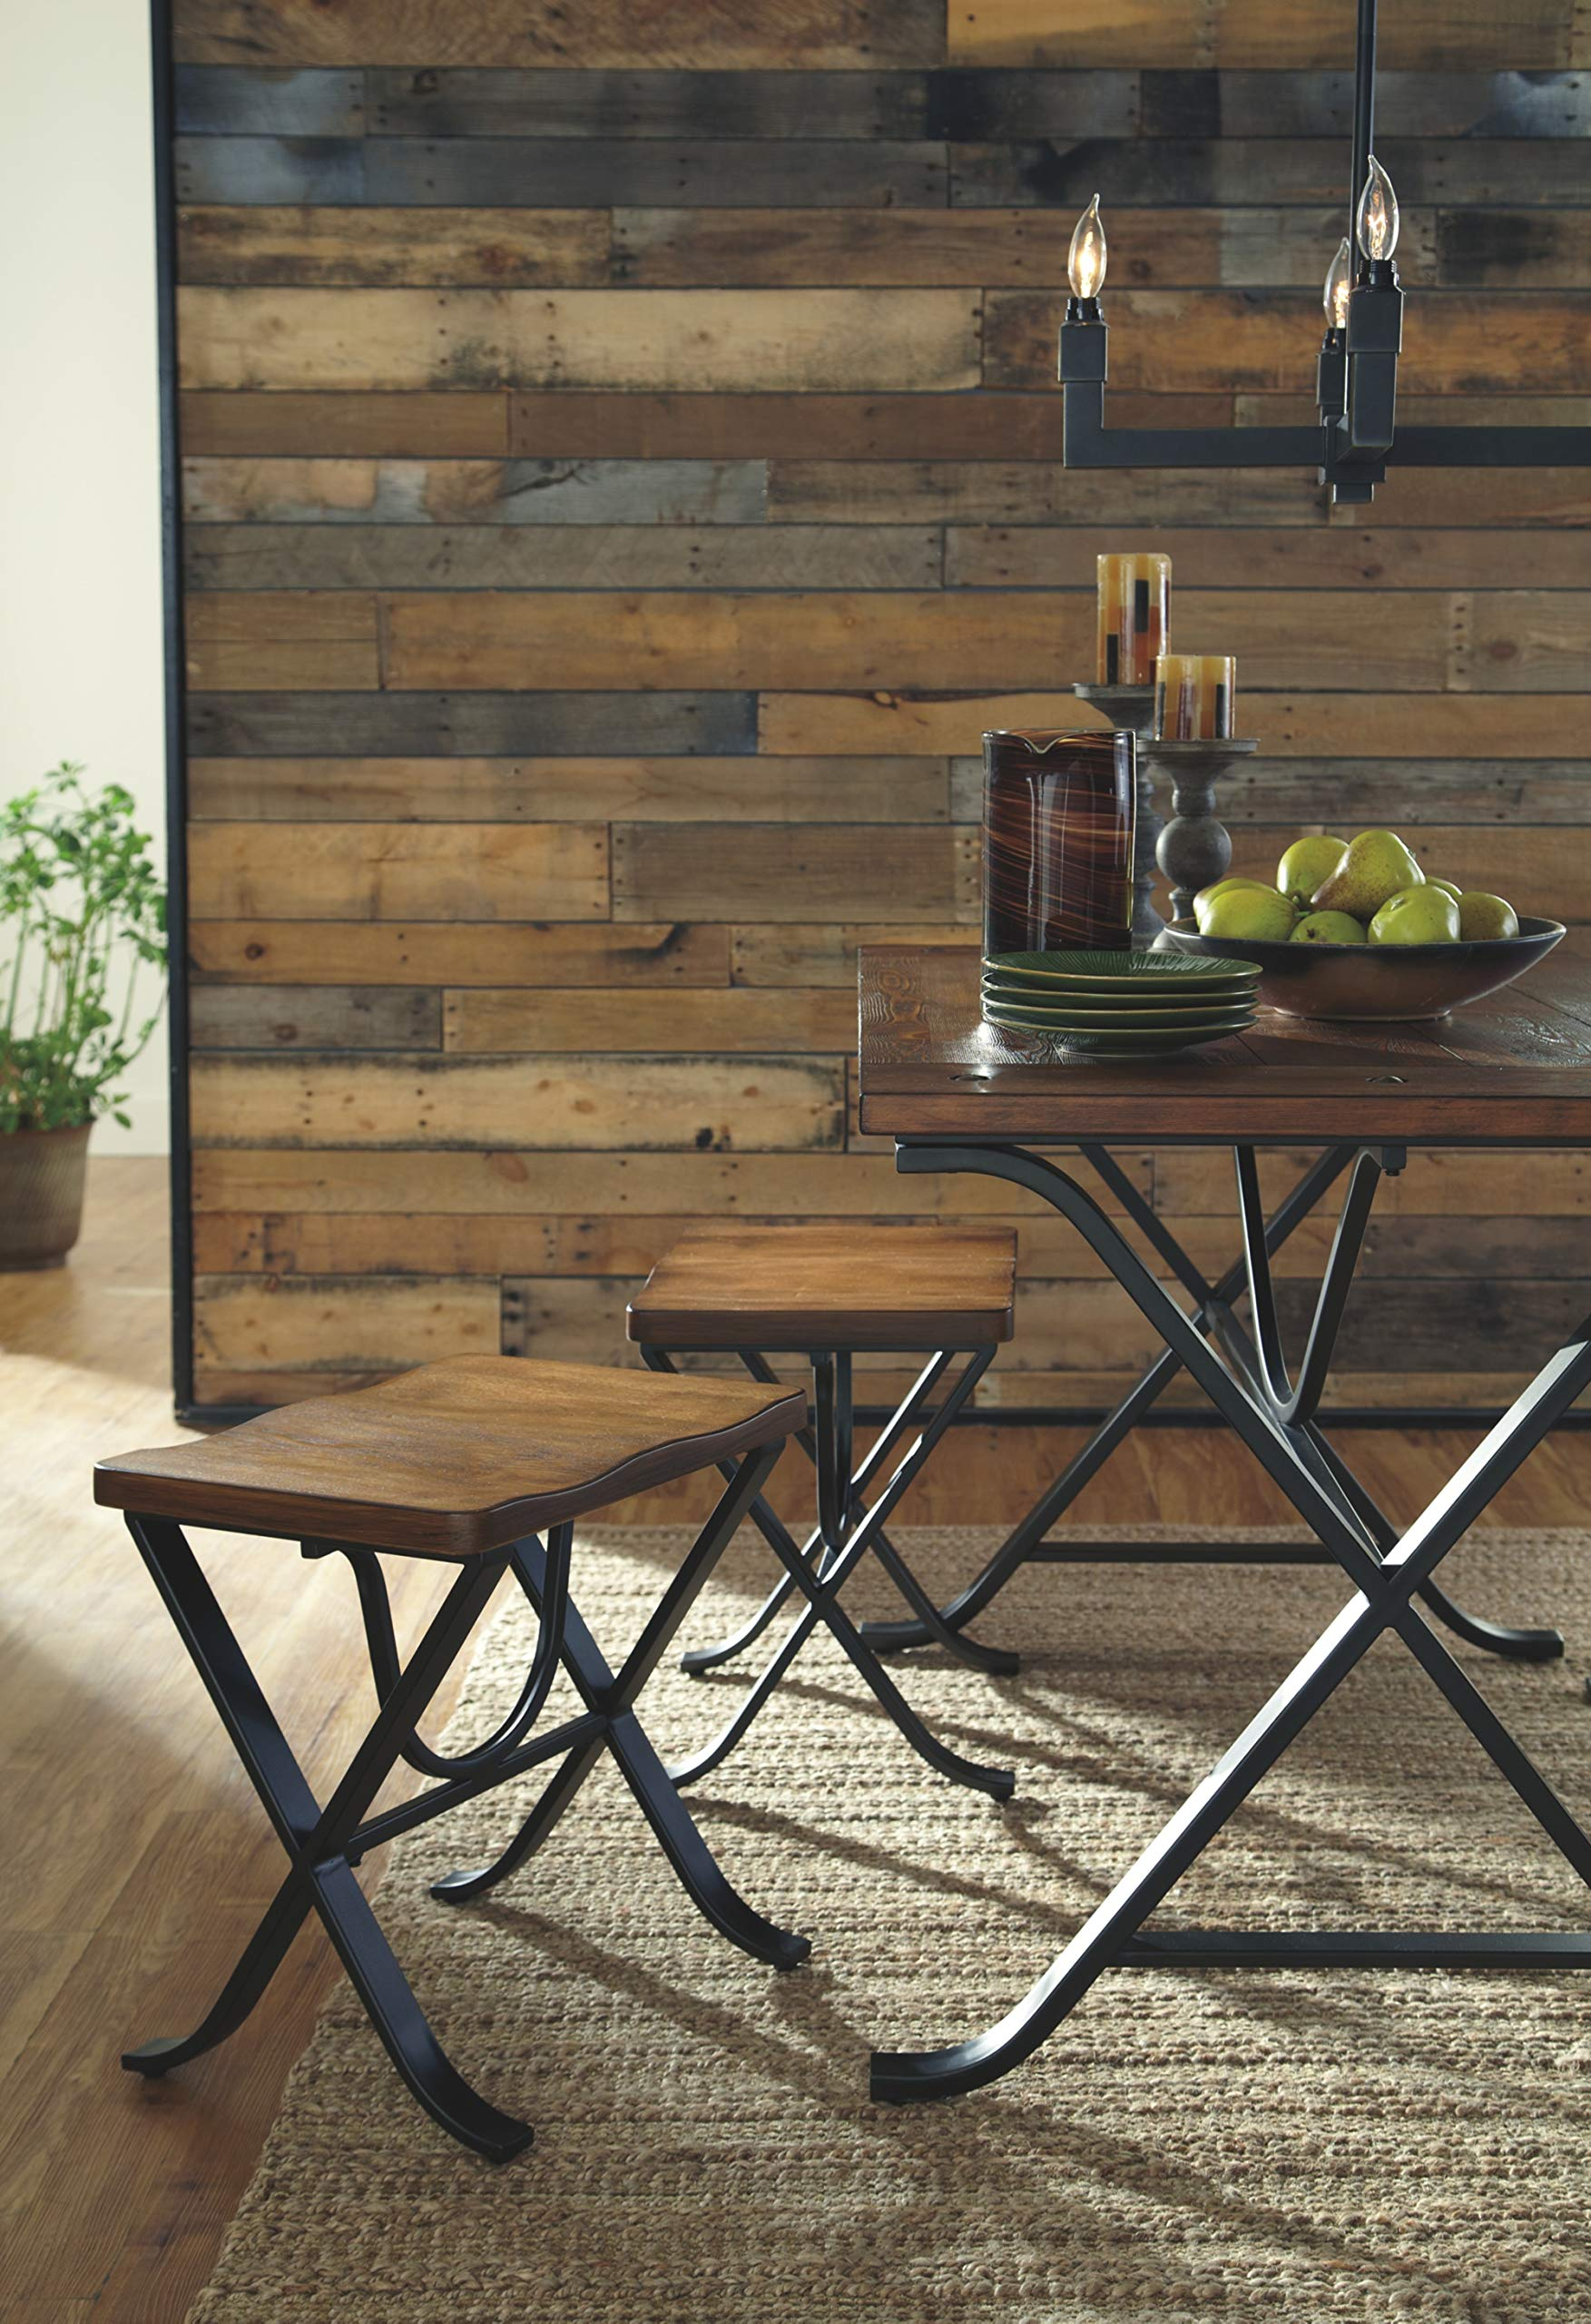 Ashley Furniture Signature Design - Freimore Dining Room Table and Stools - Set of 5 - Medium Brown Wood Top and Black Metal Legs by Signature Design by Ashley (Image #4)